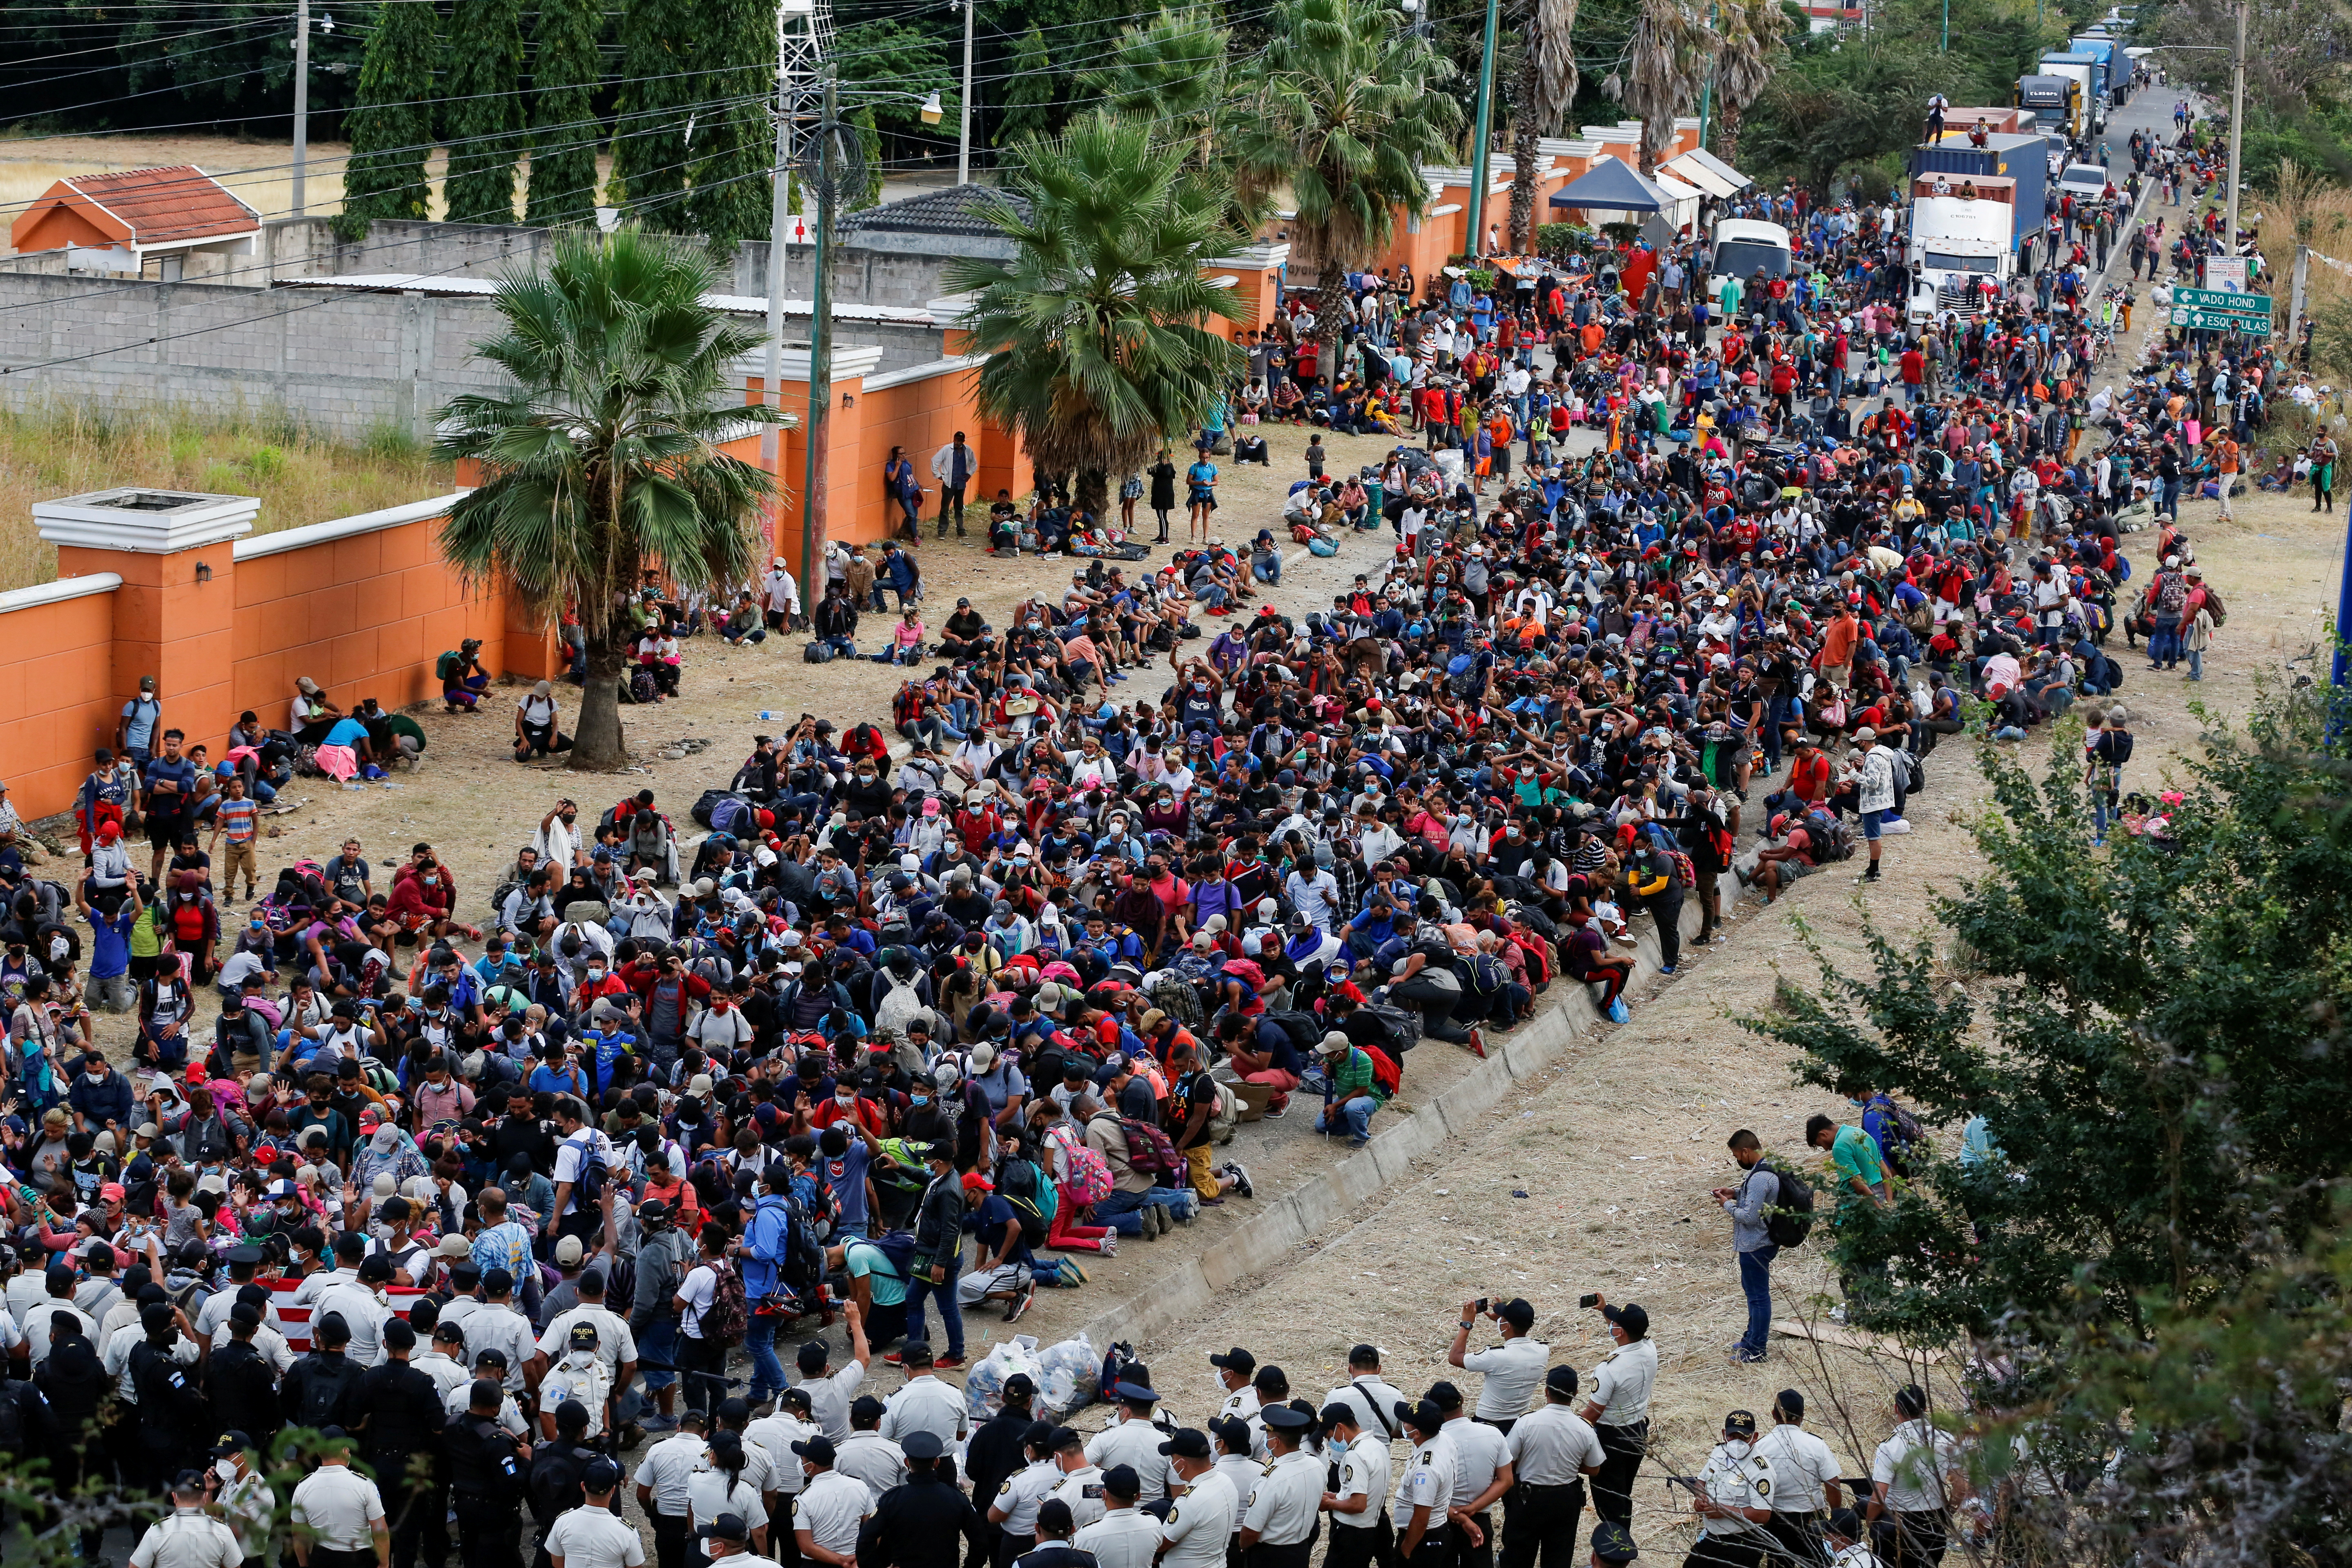 Hondurans taking part in a new caravan of migrants, set to head to the United States, gather in front of police officers blocking the road in Vado Hondo, Guatemala January 17, 2021. REUTERS/Luis Echeverria